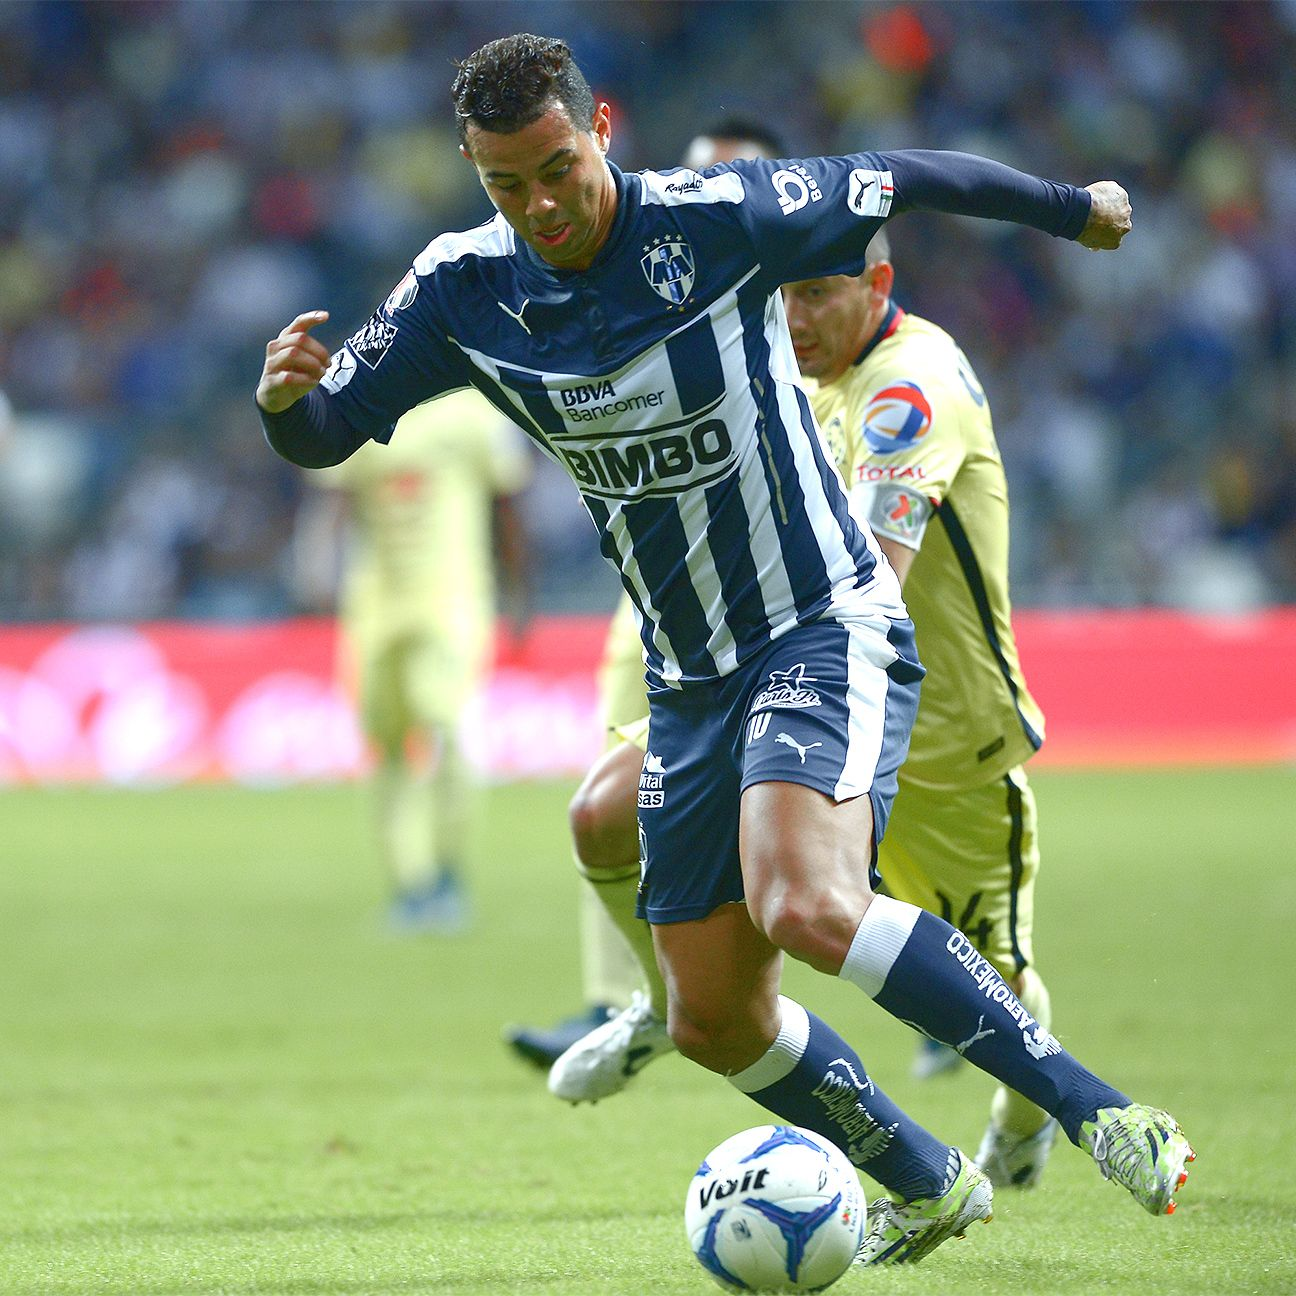 Edwin Cardona leads a talented Monterrey squad that has designs on a Clausura title.